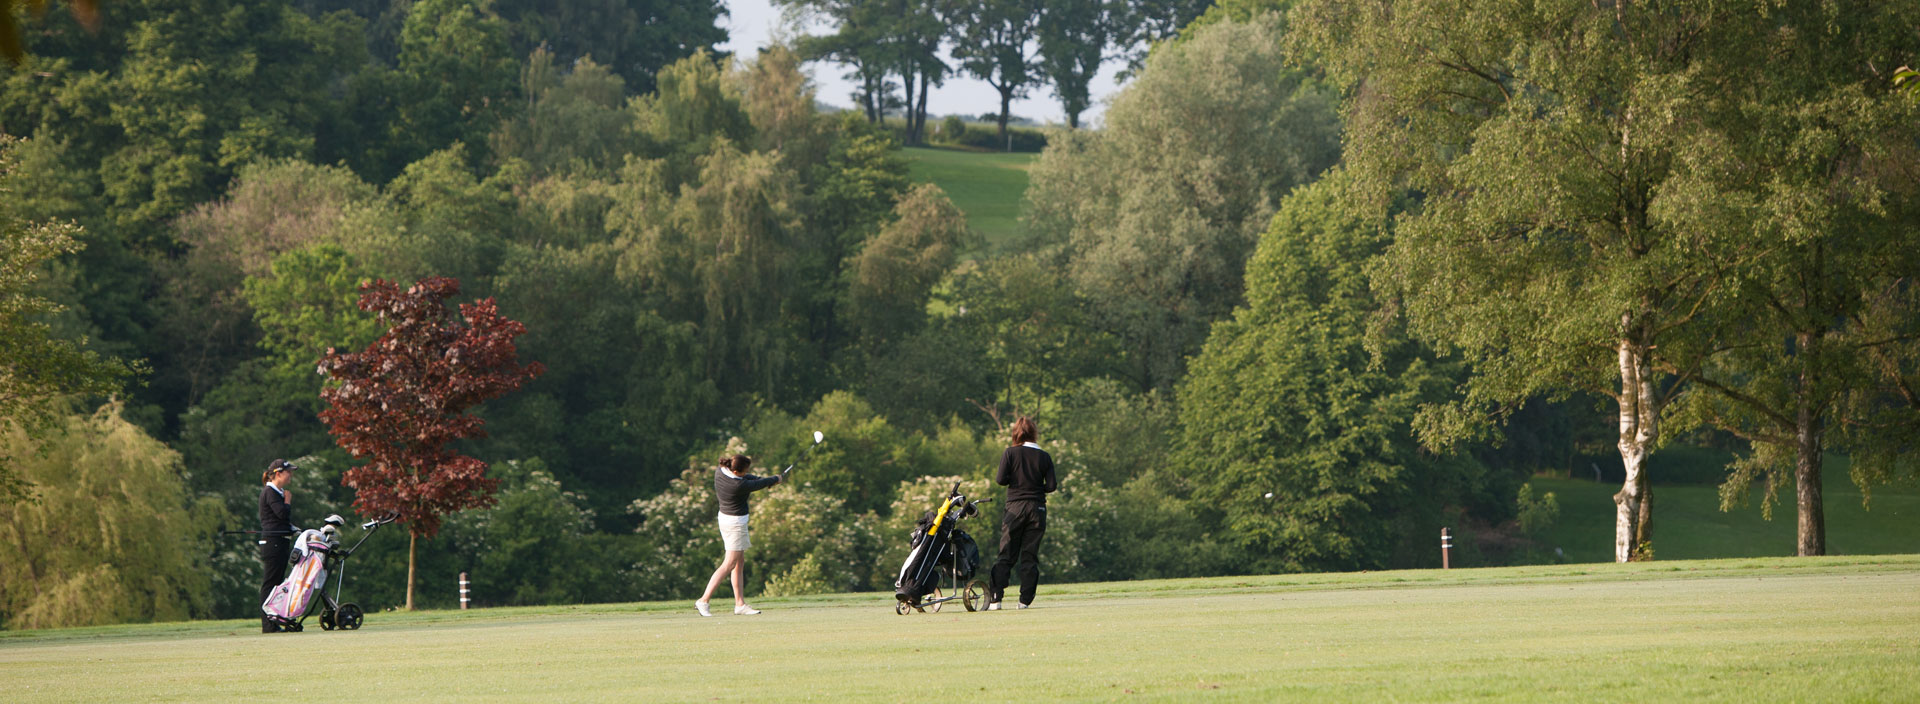 Golf-Club Bergisch Land